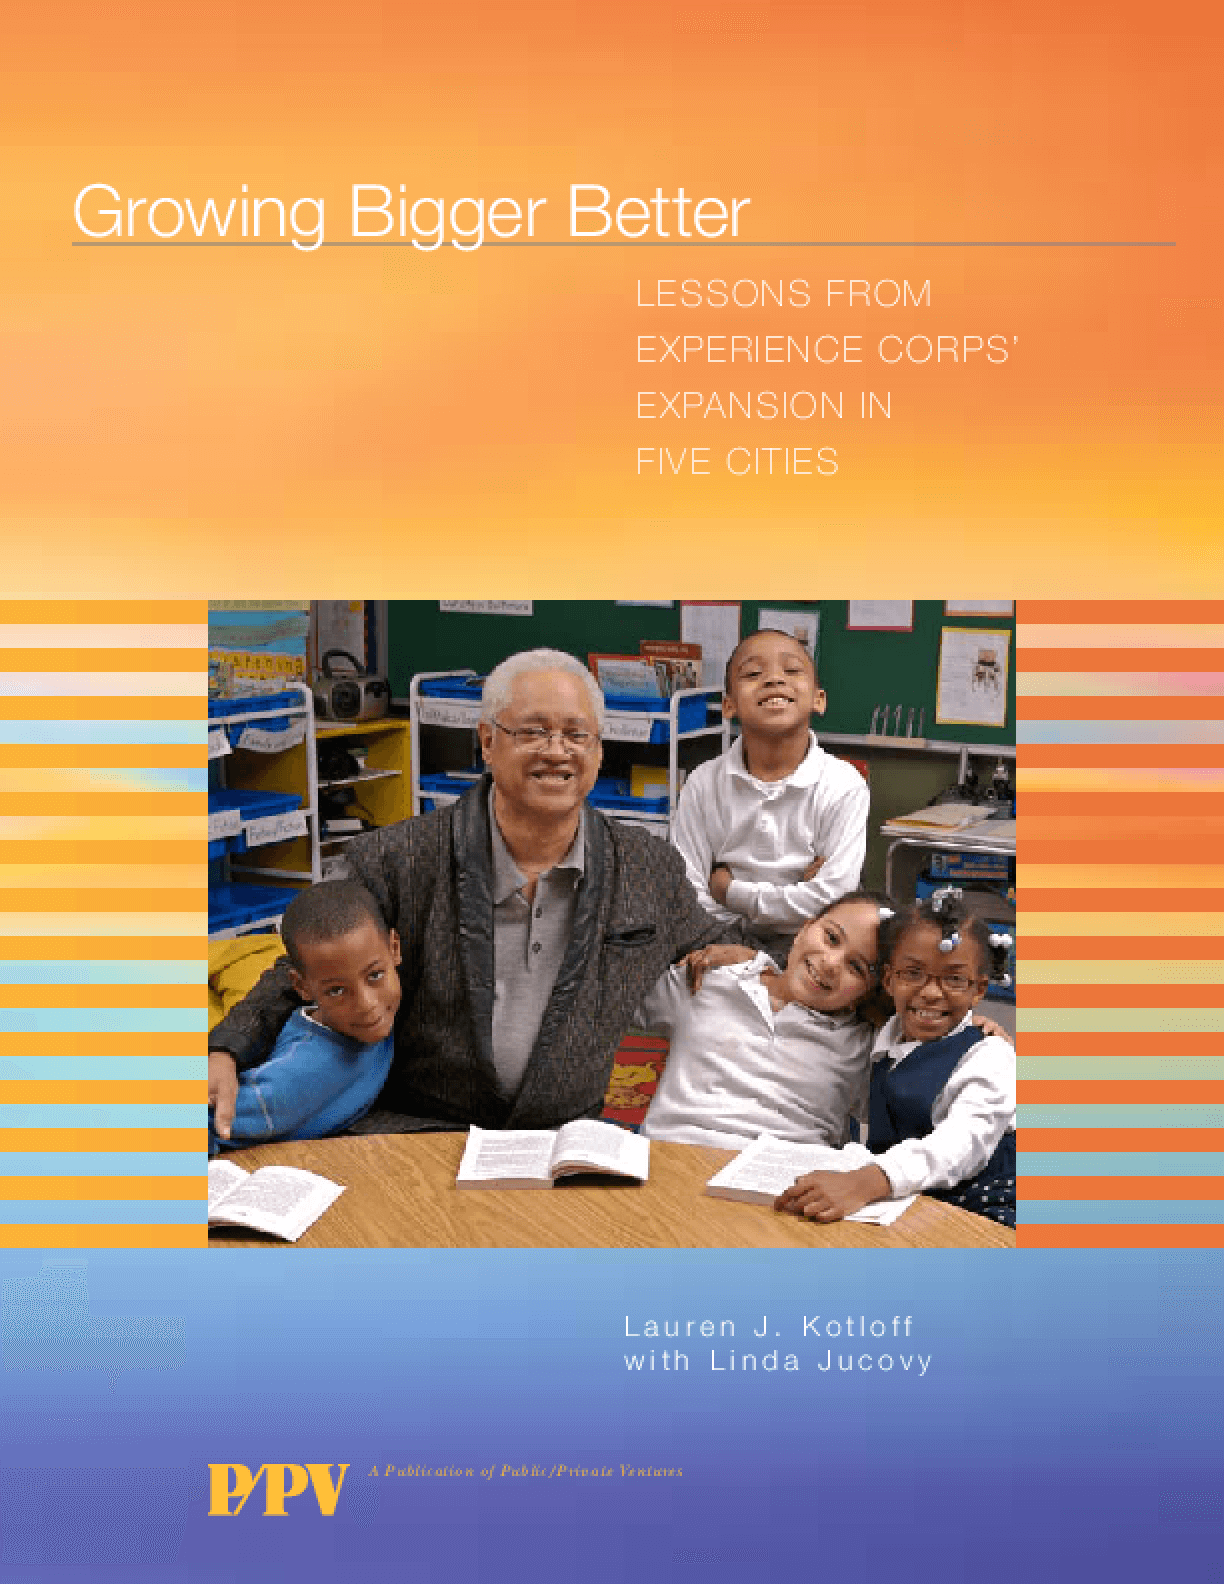 Growing Bigger Better: Lessons from Experience Corps' Expansion in Five Cities